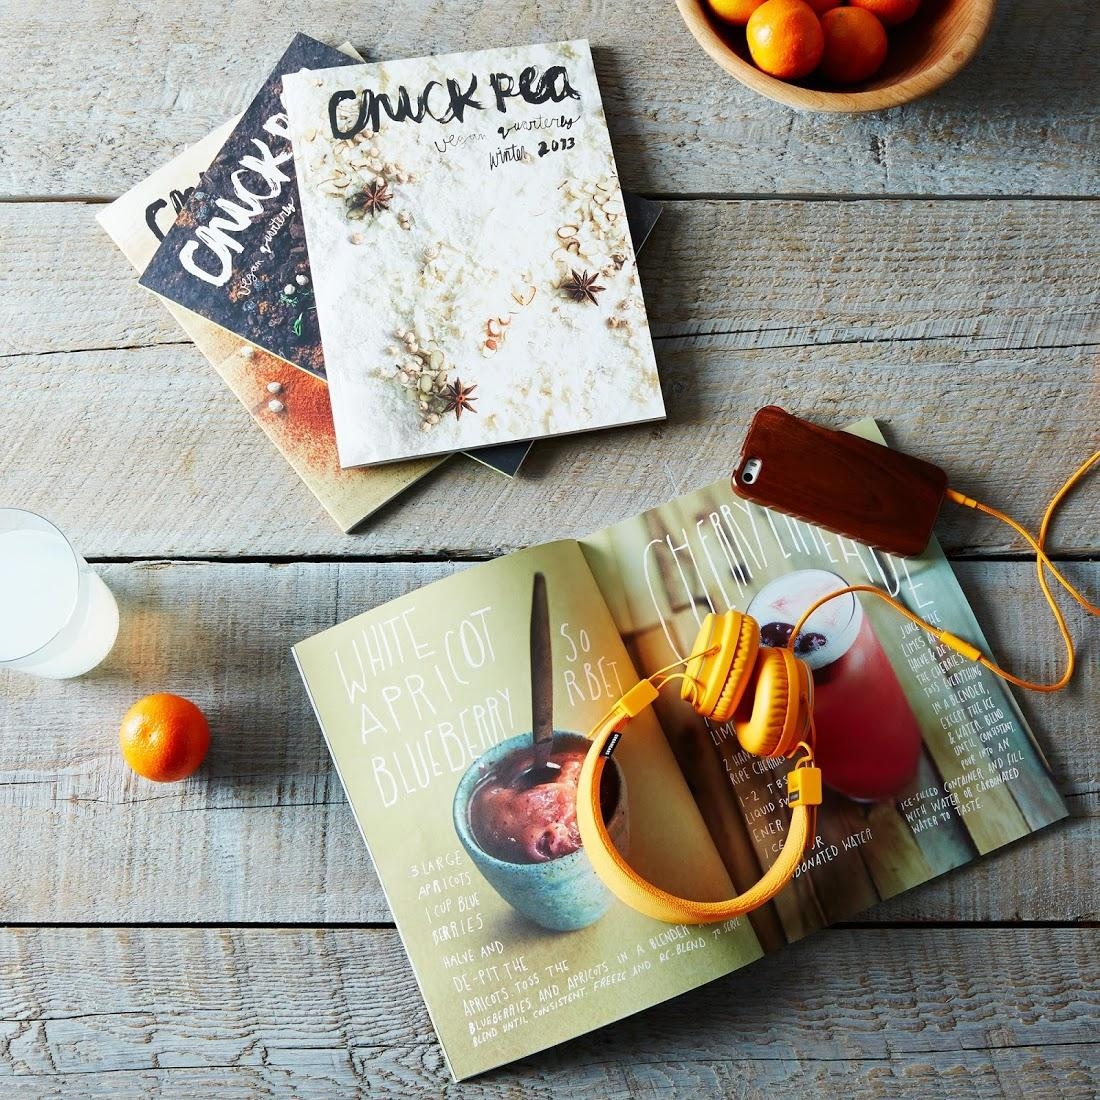 Chickpea Magazine on Provisions by Food52